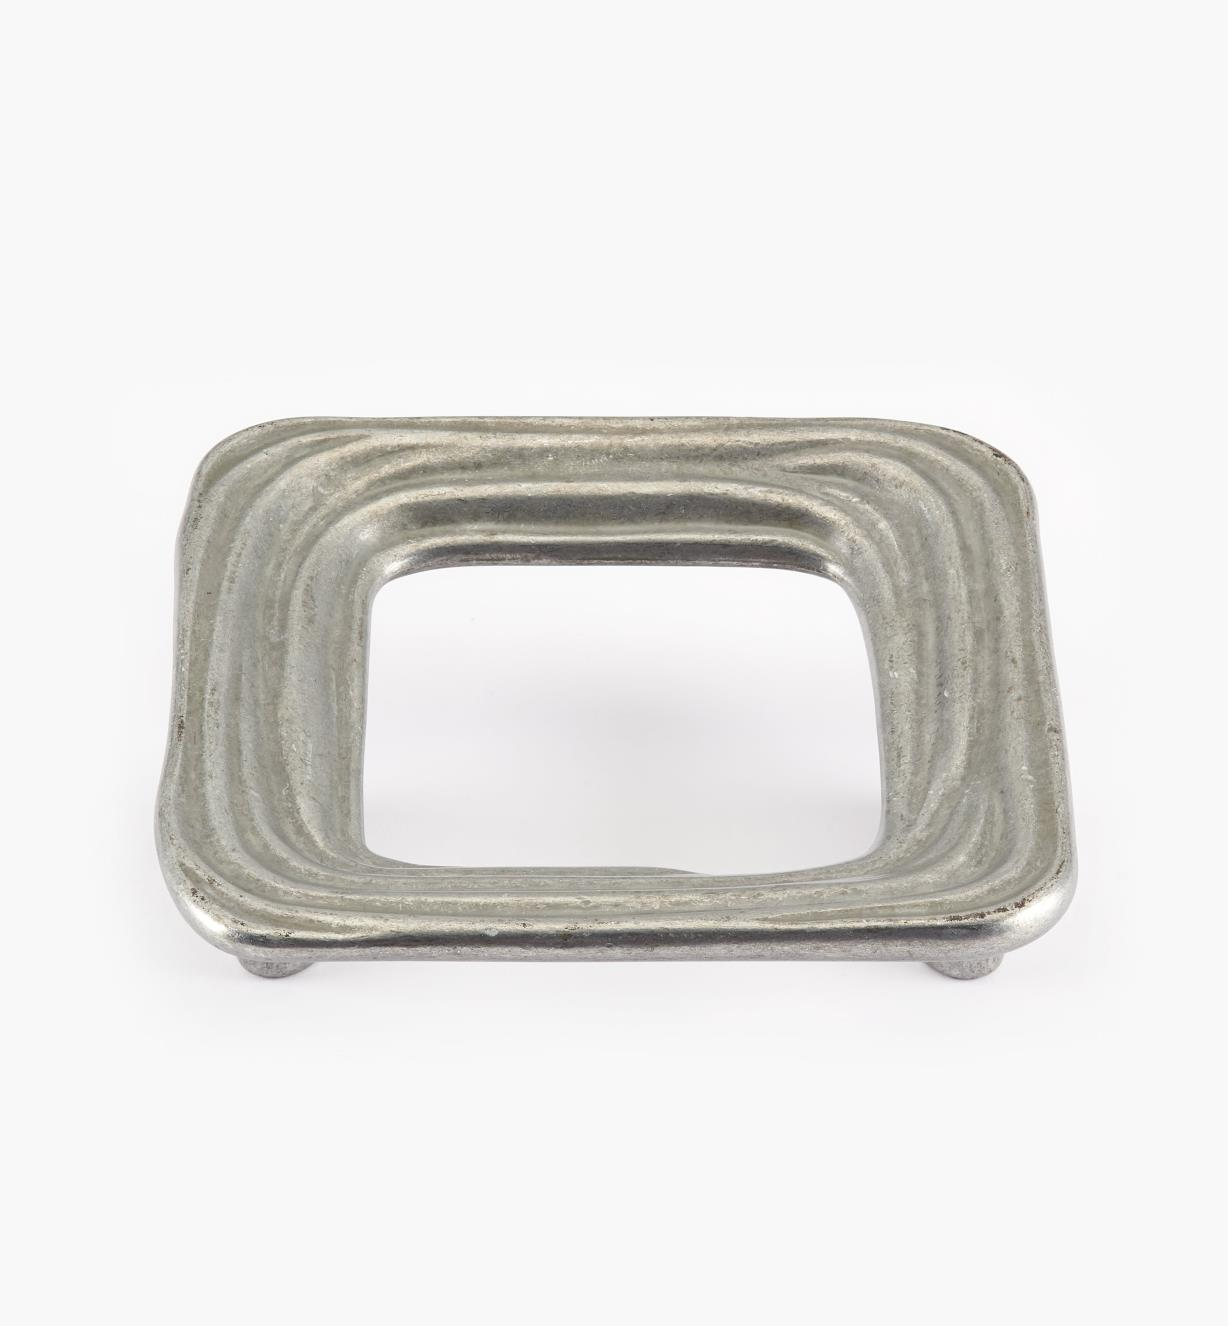 00A7407 - 64mm Oasis Square Handle, Tumbled Nickel